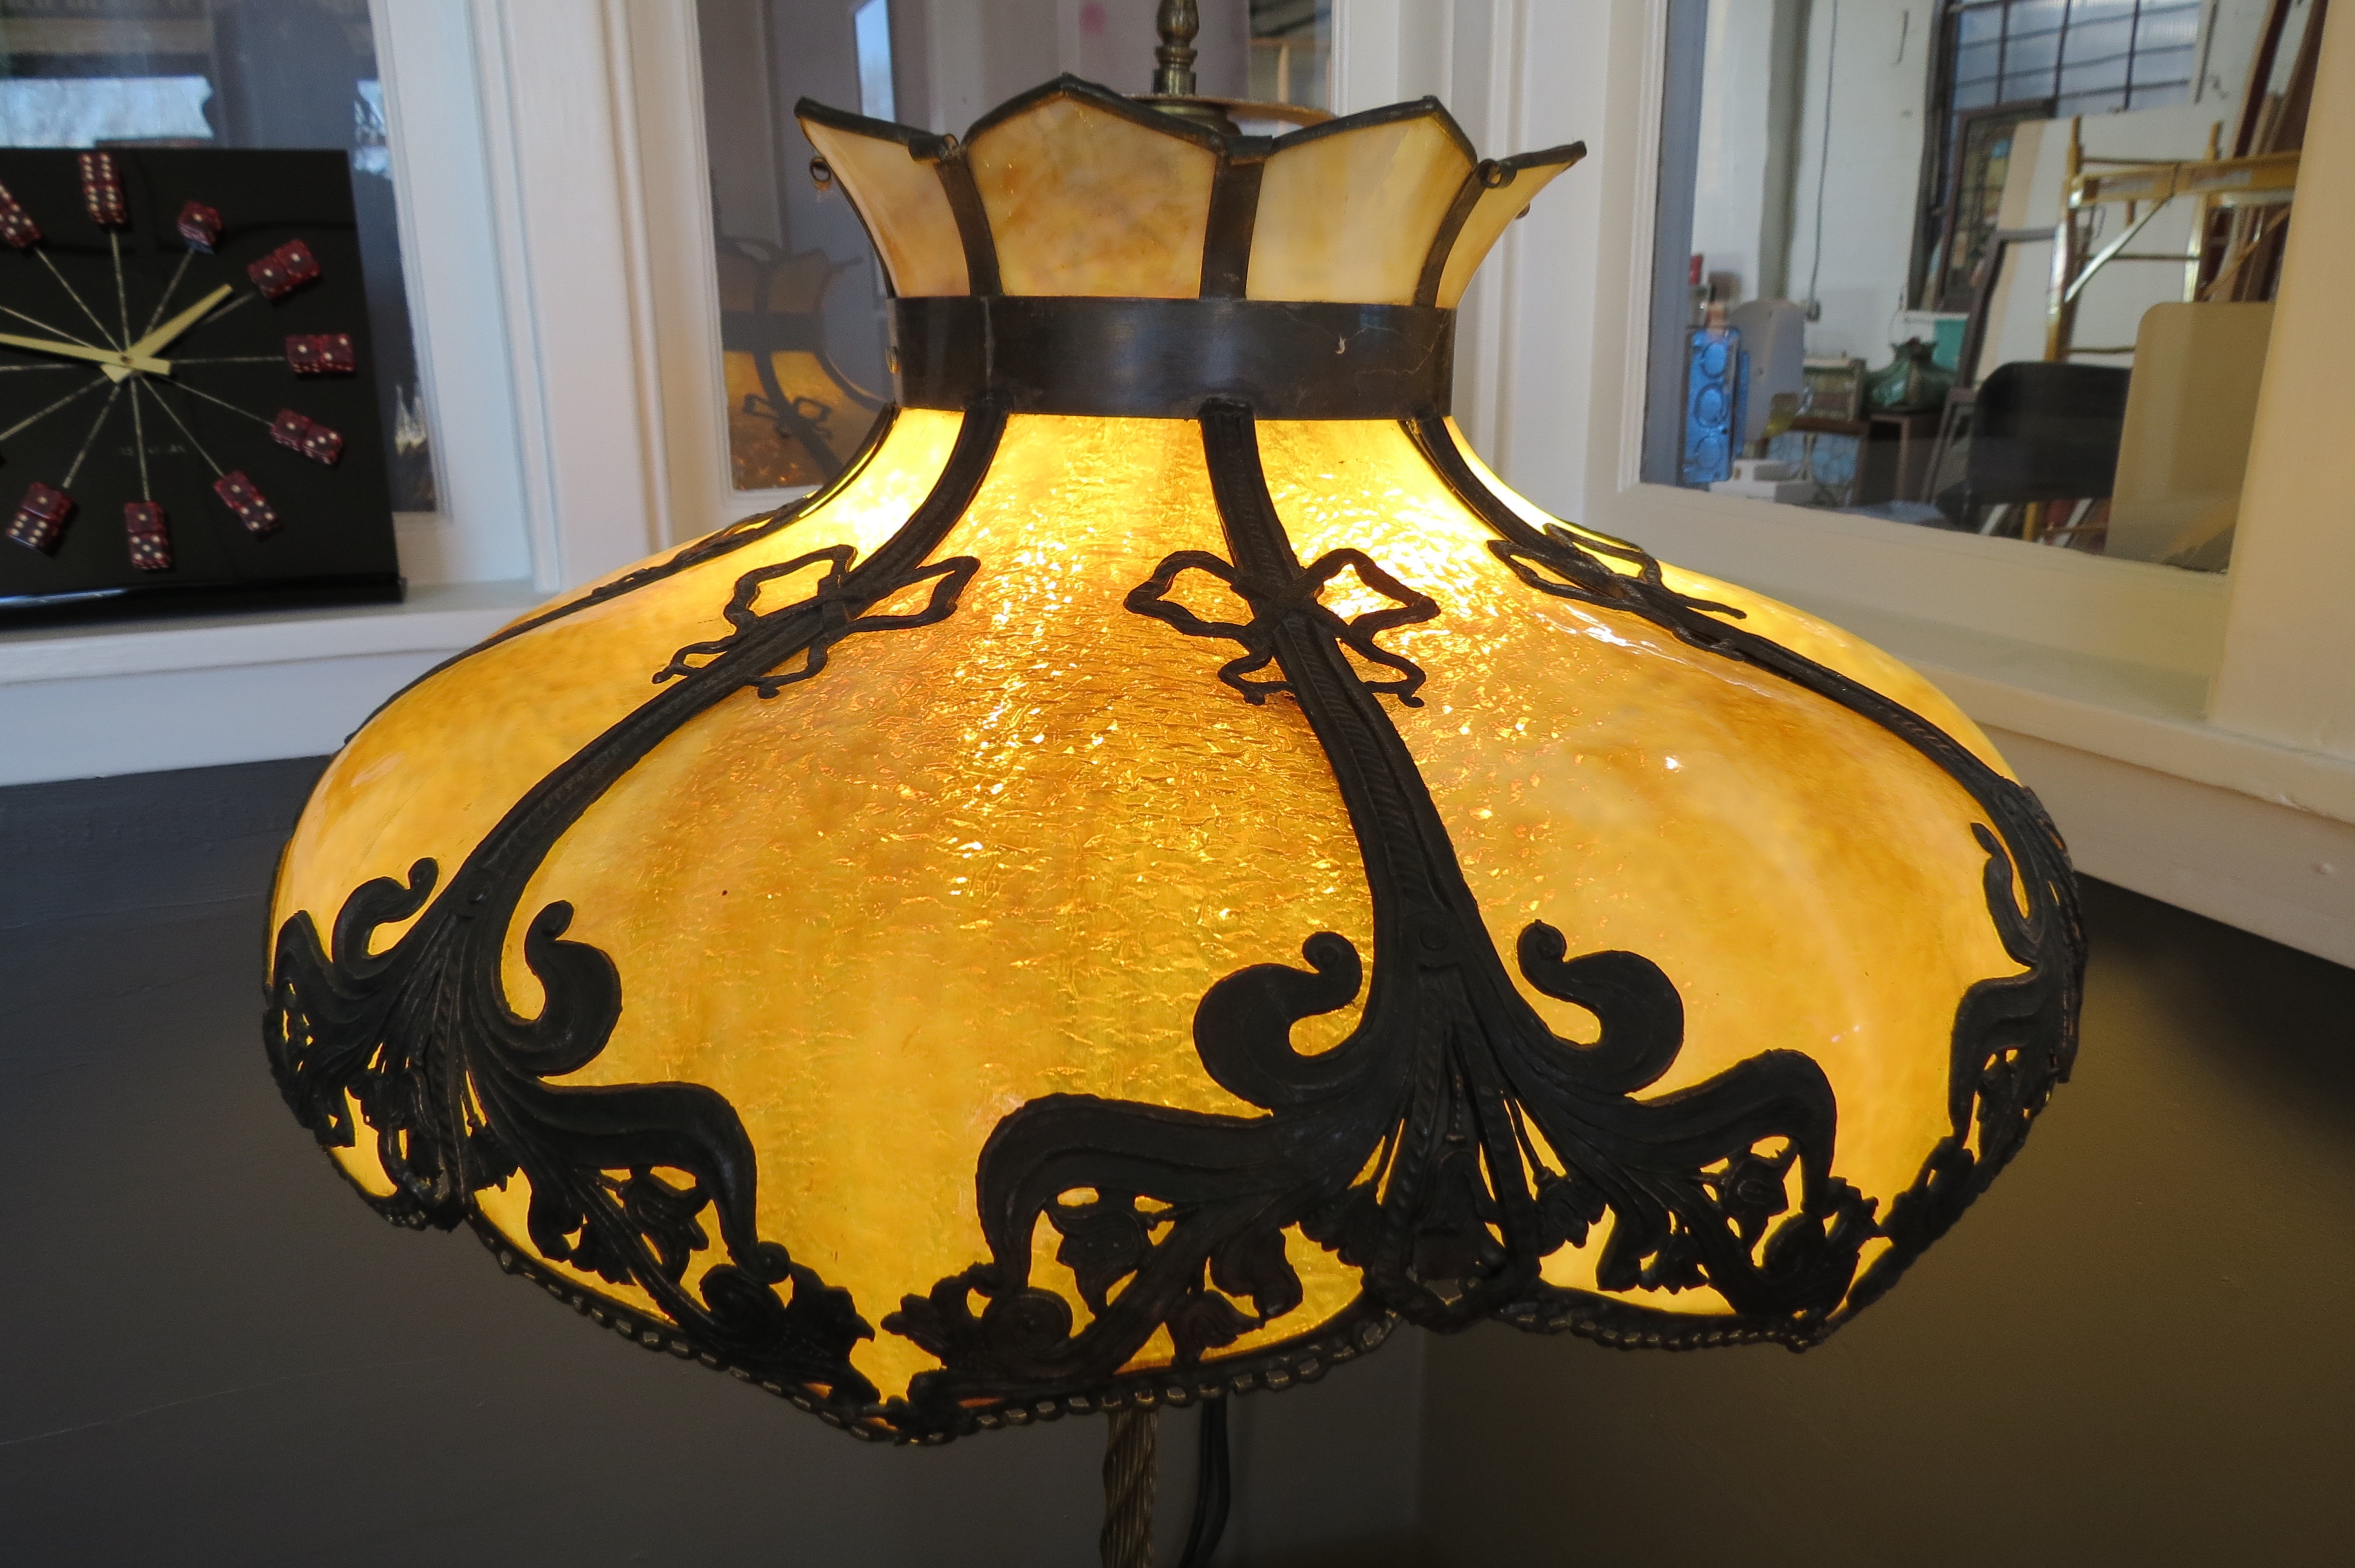 mccully art glass & restorations lafayette indiana tiffany stained glass restoration